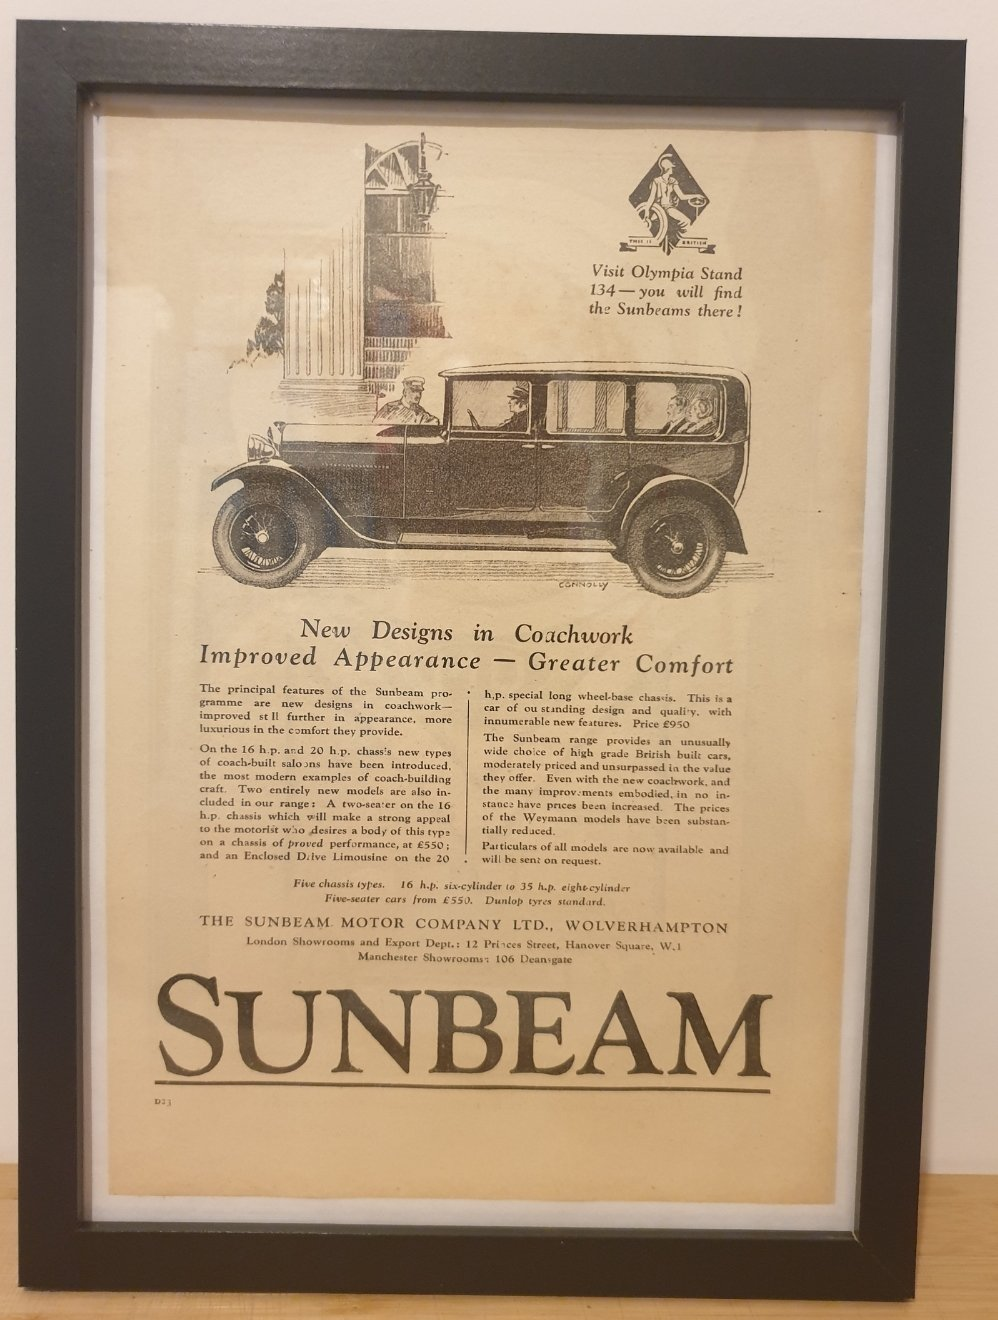 1976 Original 1928 Sunbeam Framed Advert  For Sale (picture 1 of 3)